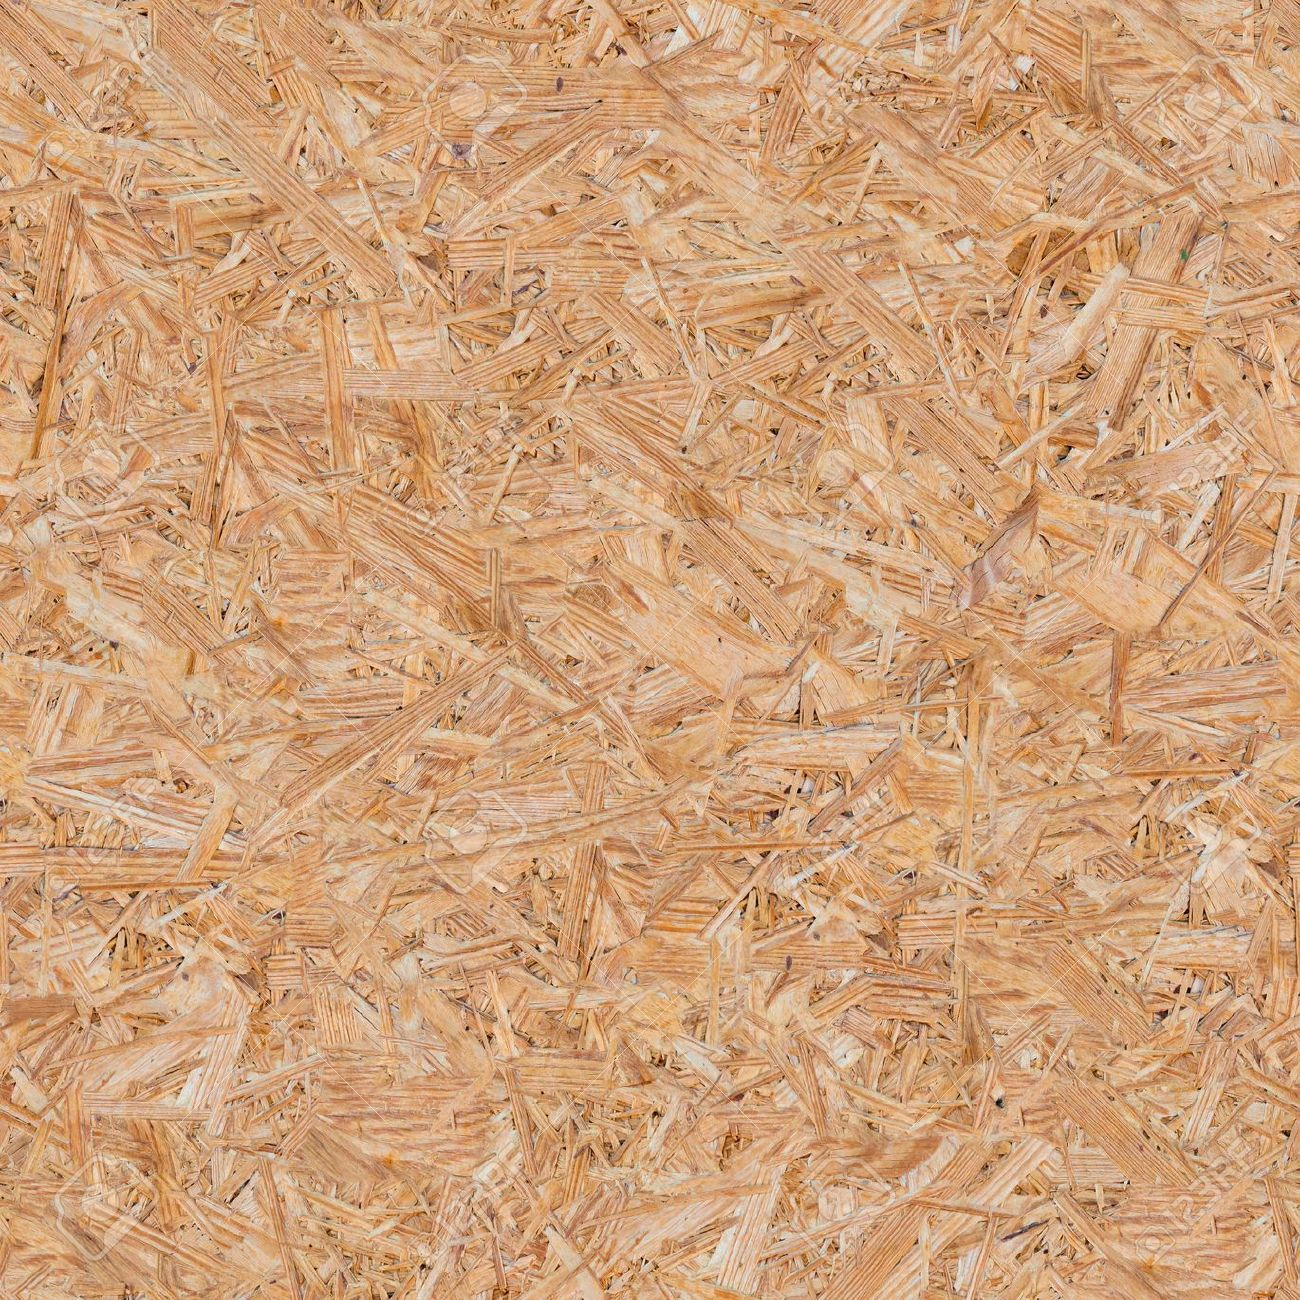 Pressed wooden panel osb seamless tileable